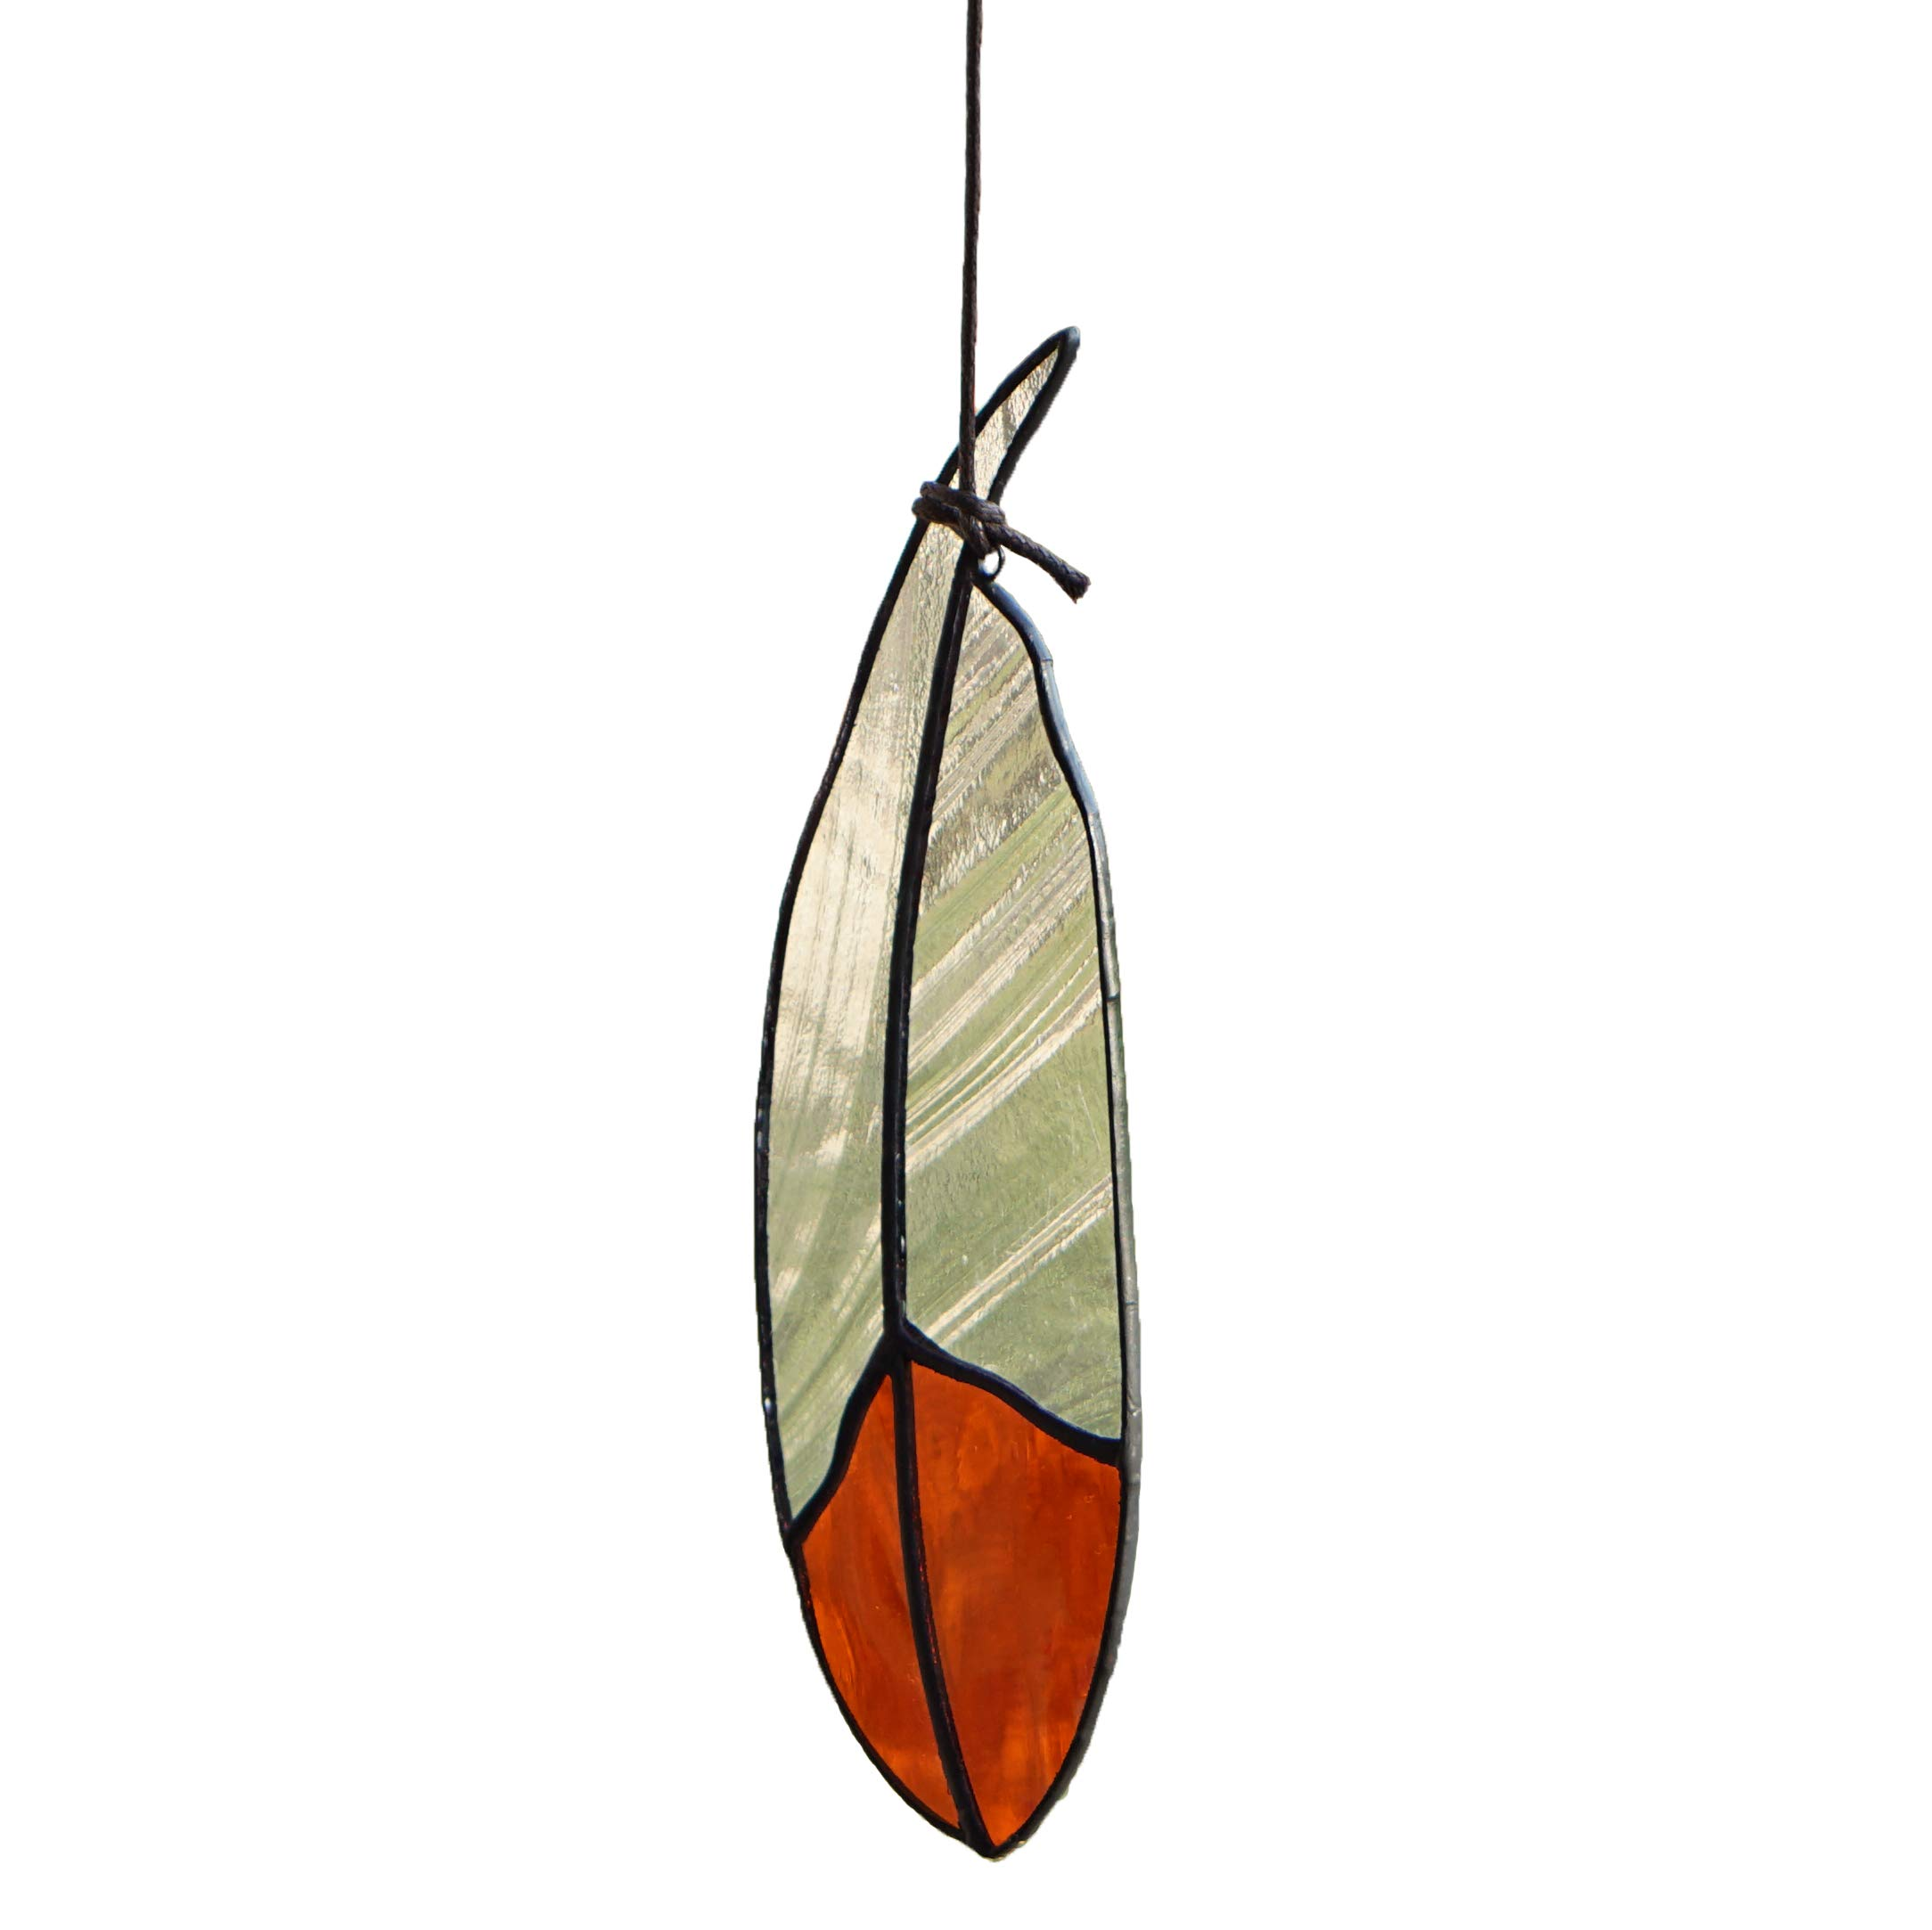 Stained Glass Window Hangings Window Decorative Ornaments Stained Glass Feather Glass SunCatcher for Window Treatment, 7.1'' Inch (Orange)